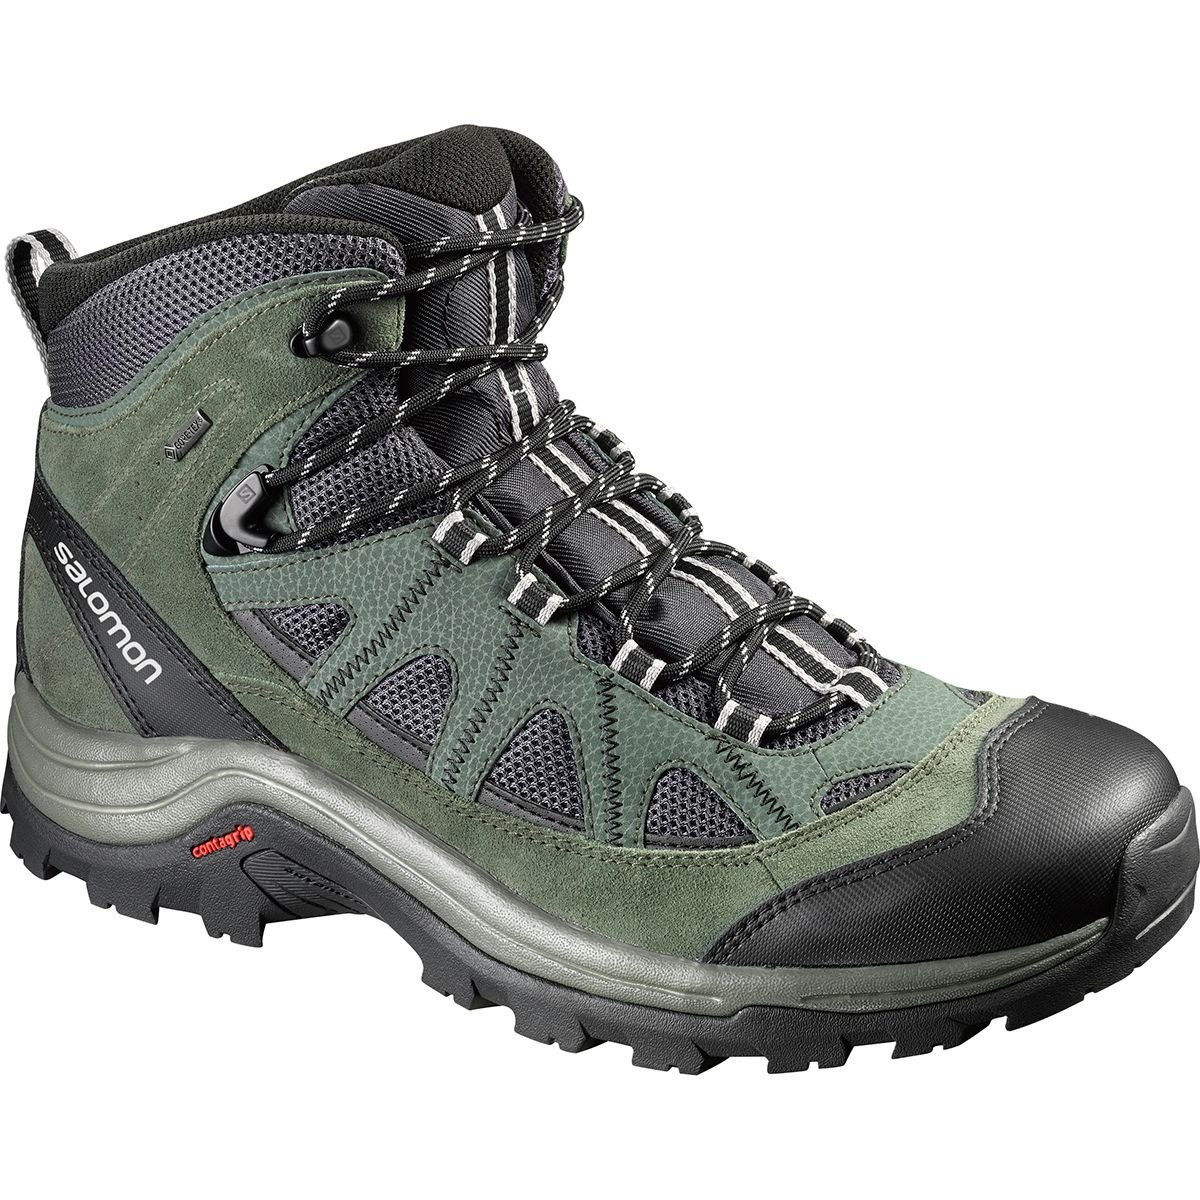 Salomon Men's Authentic LTR GTX Backpacking Boot, Asphalt/Night Forest/Aluminium, 7 M US by Salomon